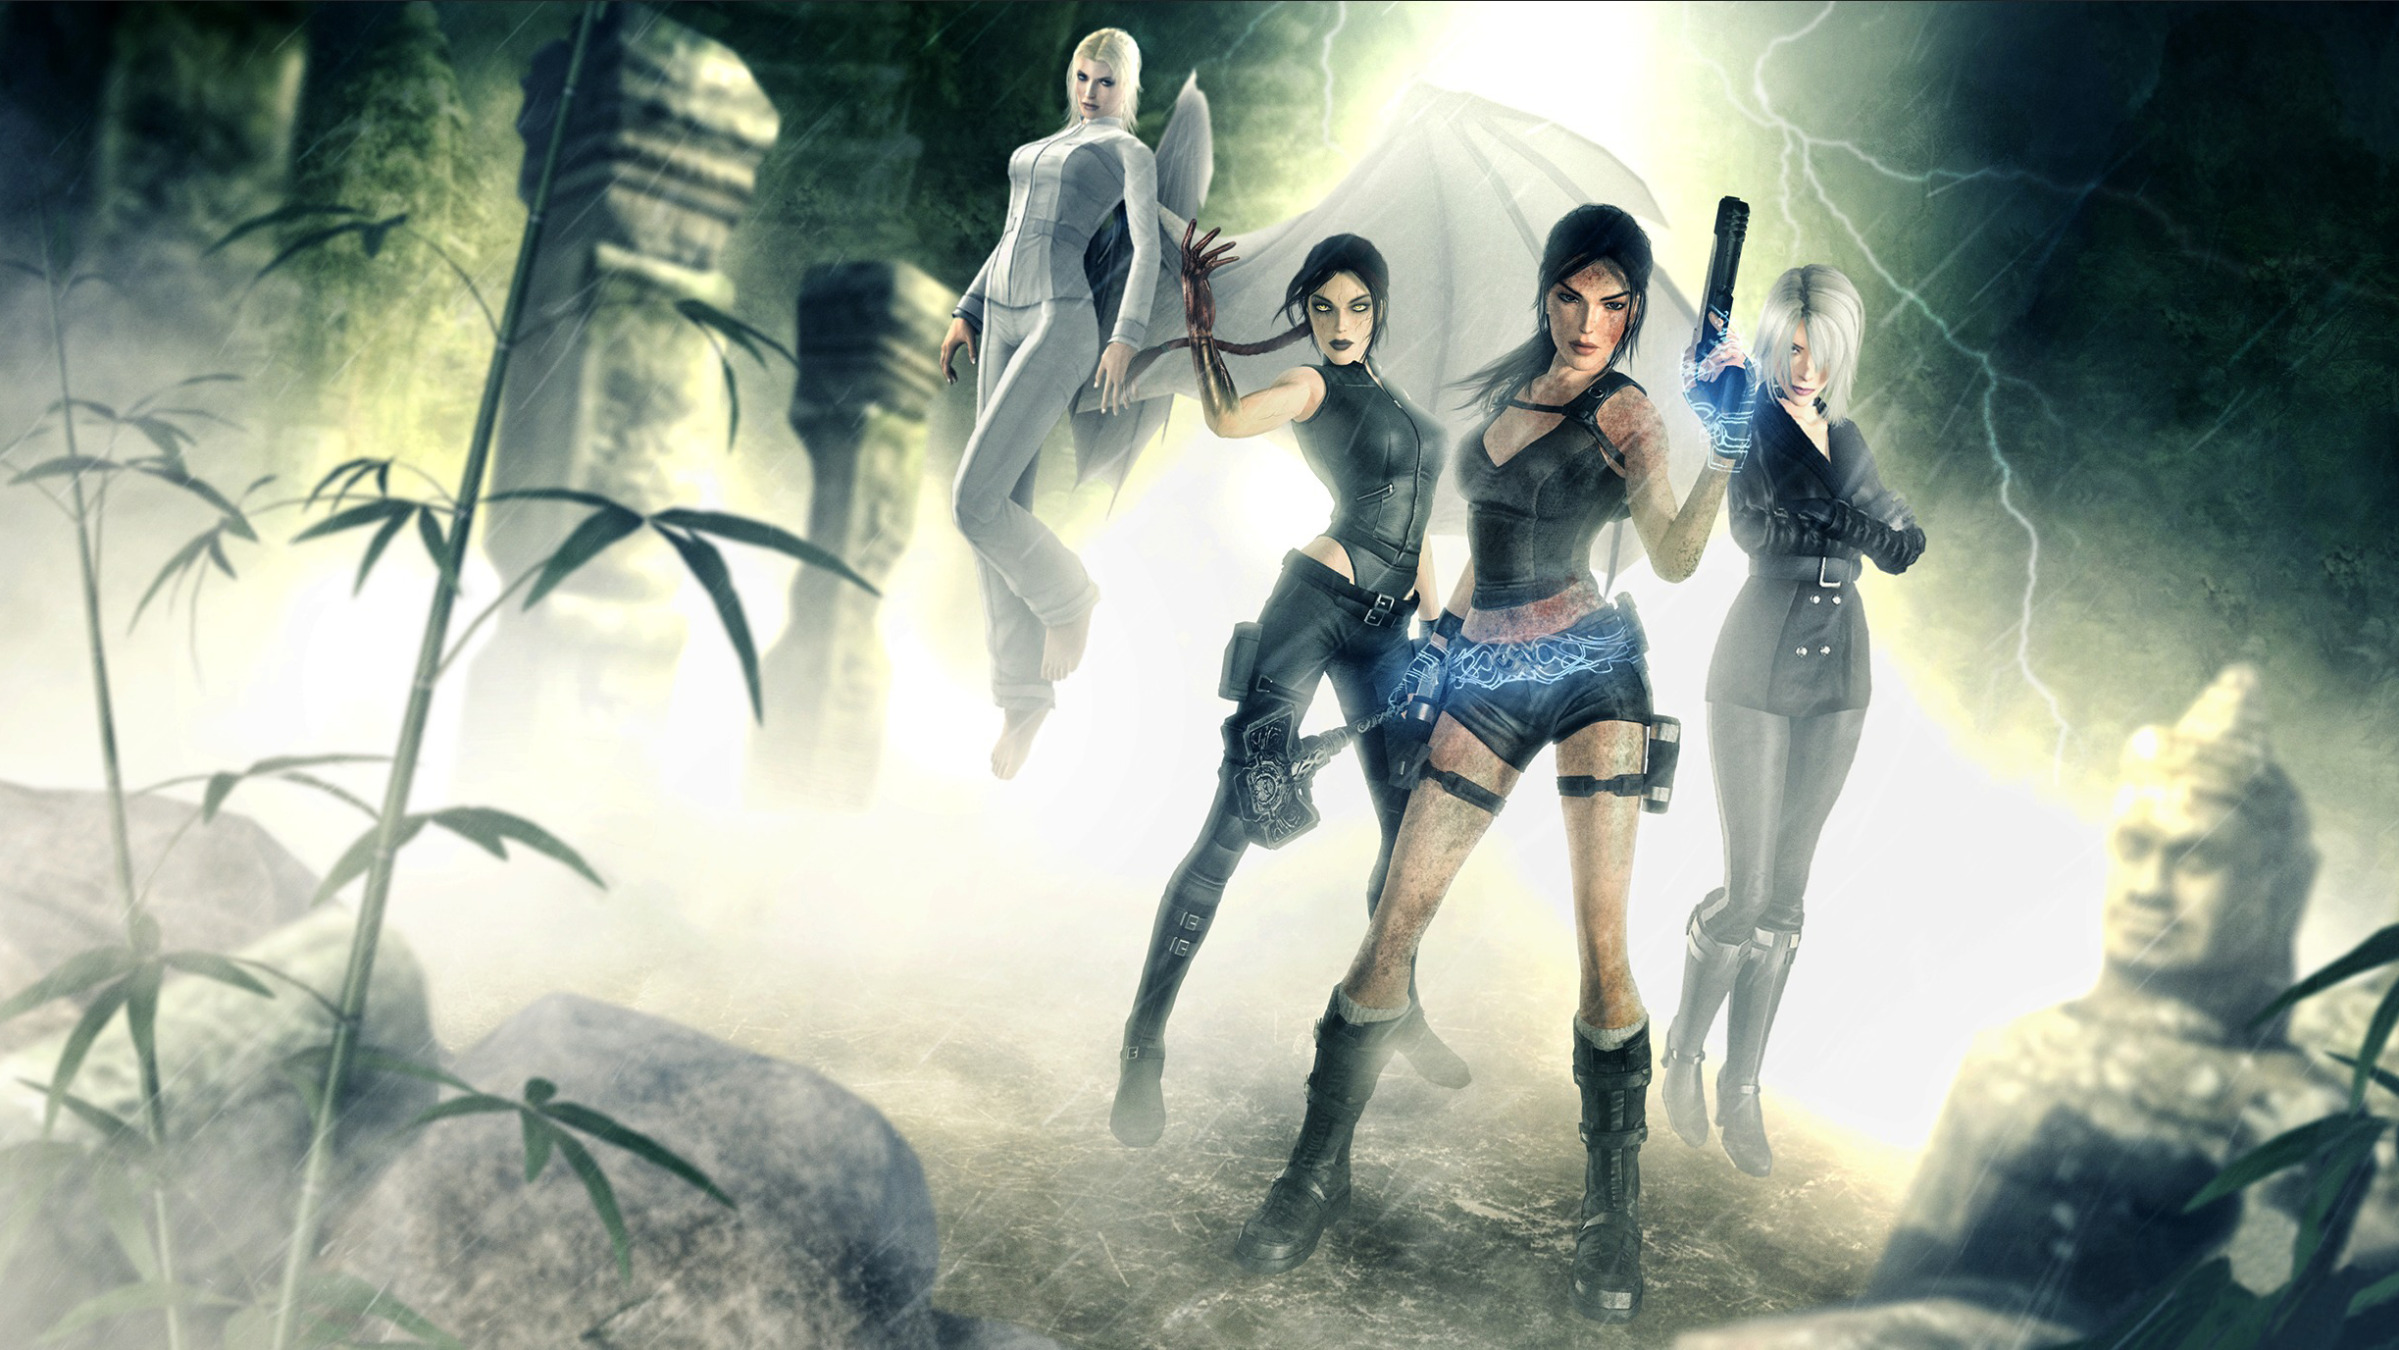 Free Download Lara Croft Tomb Raider Wallpapers And Background